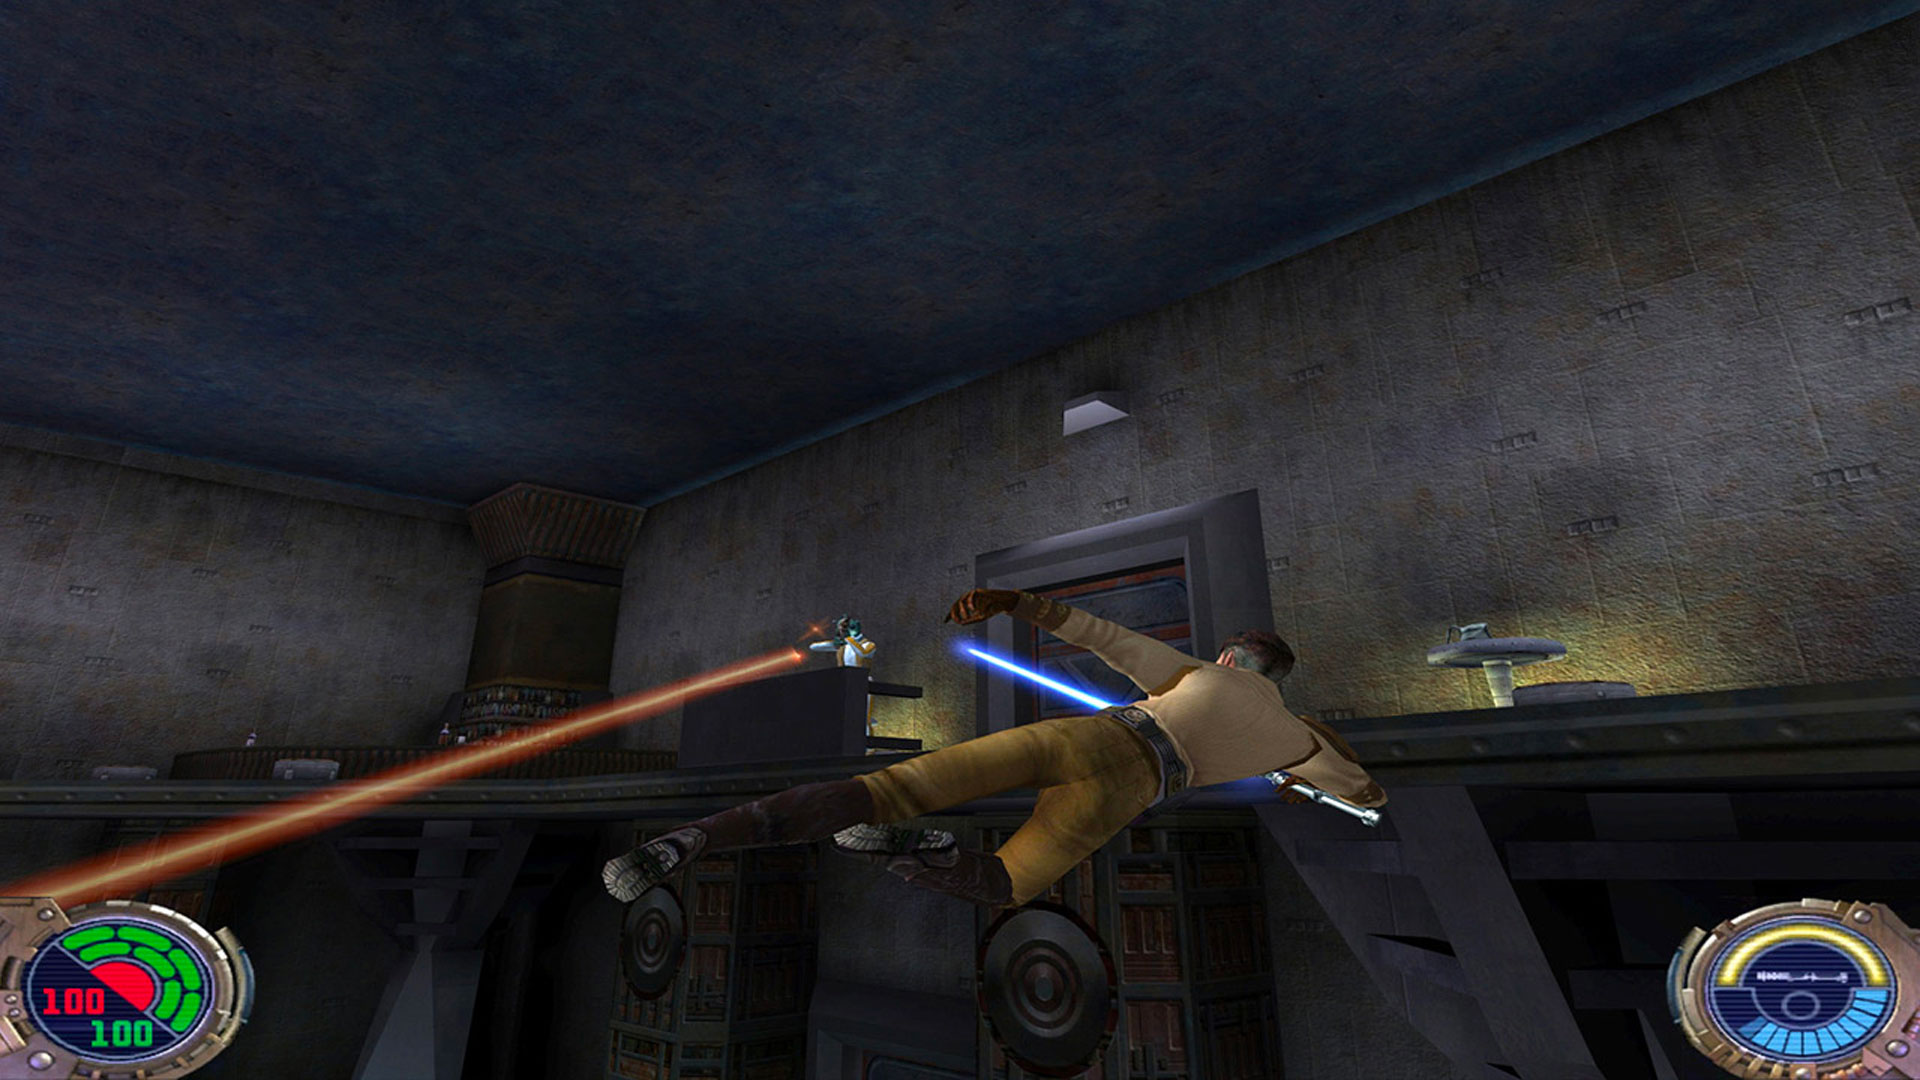 Star Wars Jedi Knight Games To Be Released On Nintendo Switch